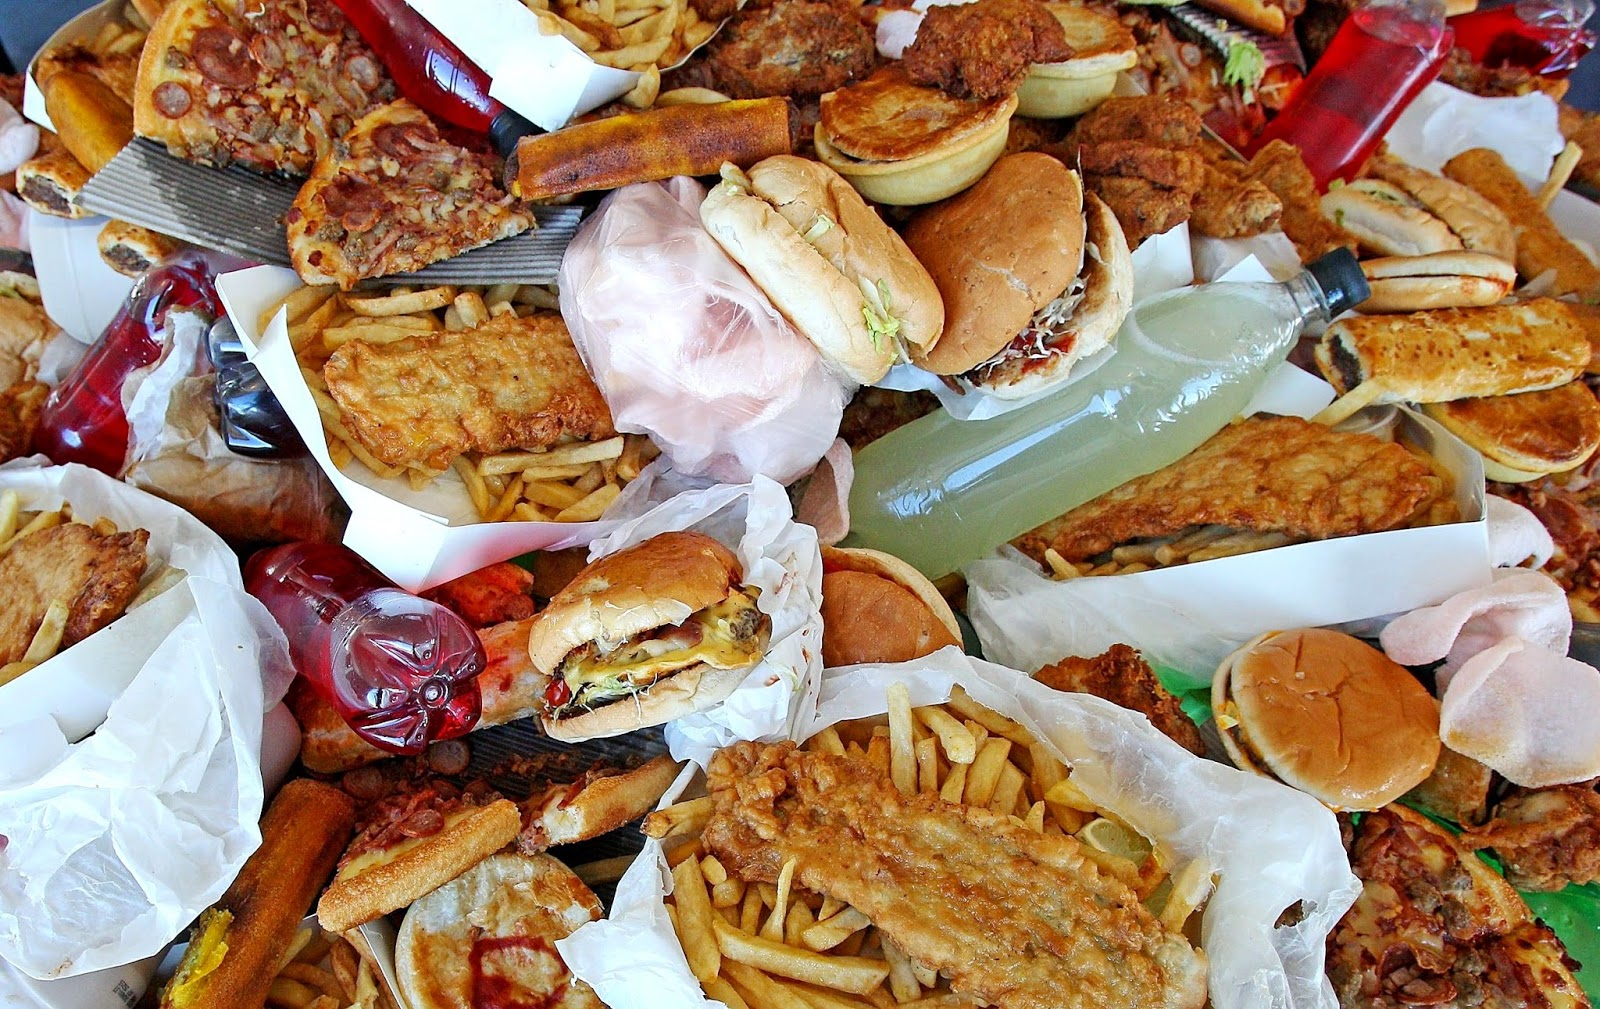 health hazards of junk food inadolescents